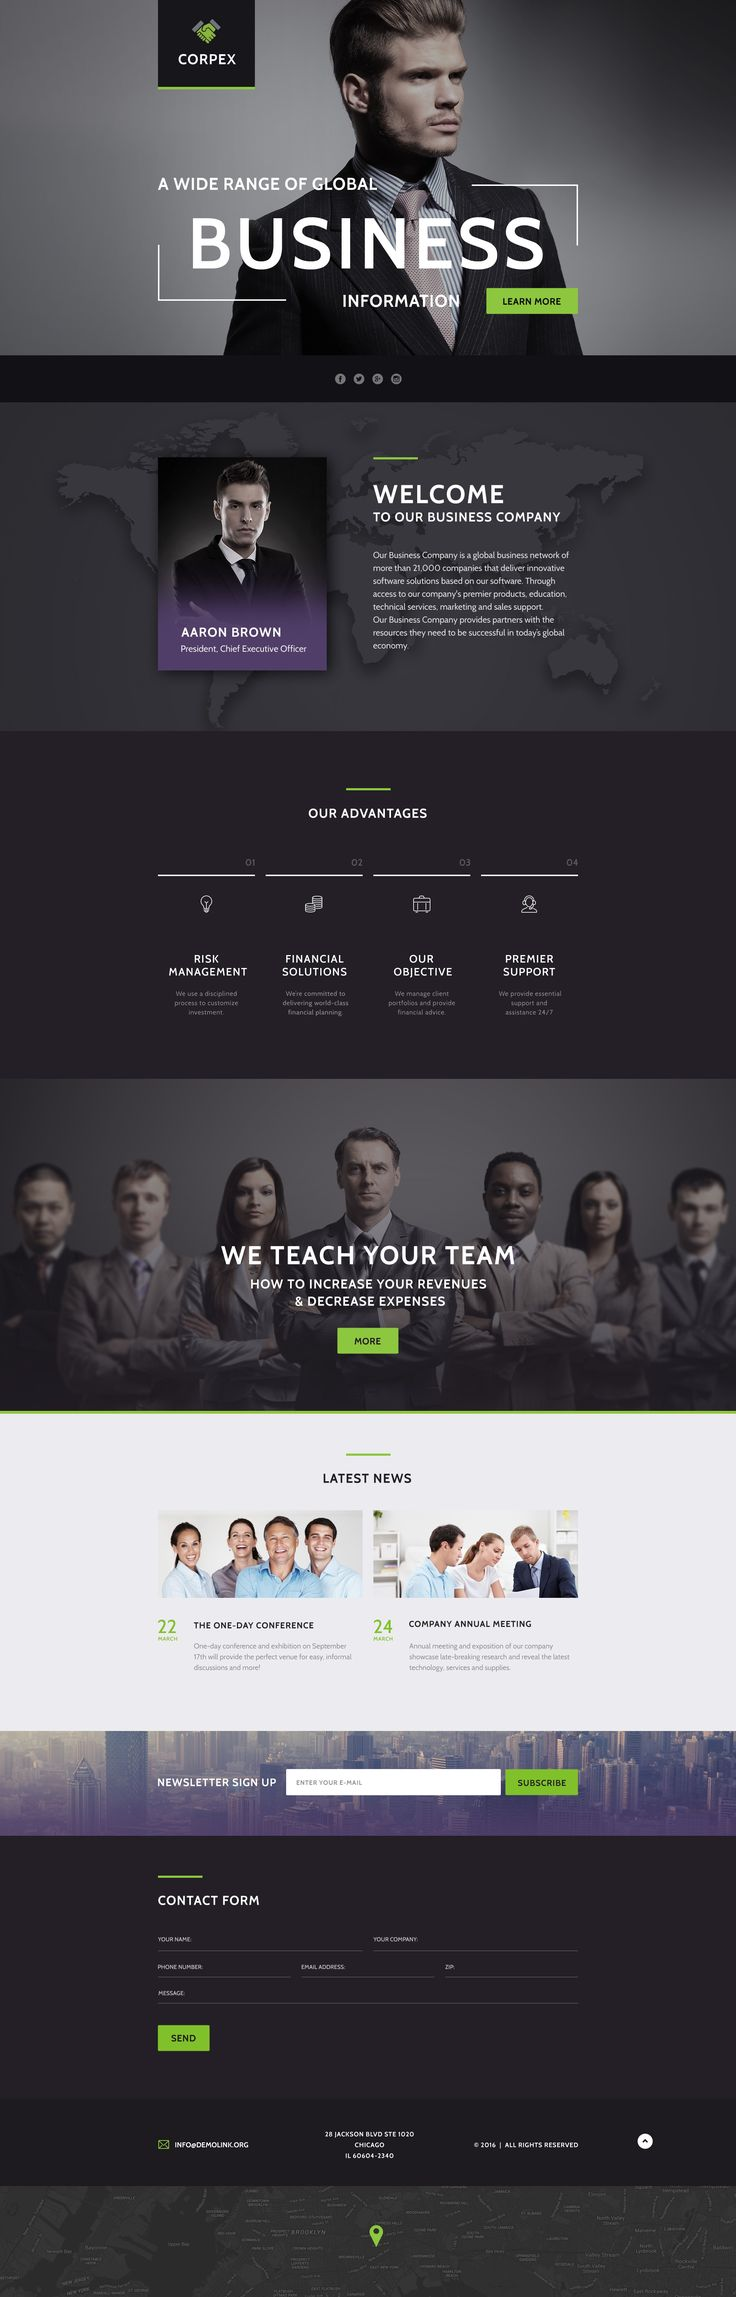 Business Responsive Landing Page Template #58438 http://www.templatemonster.com/landing-page-template/business-responsive-landing-page-template-58438.html